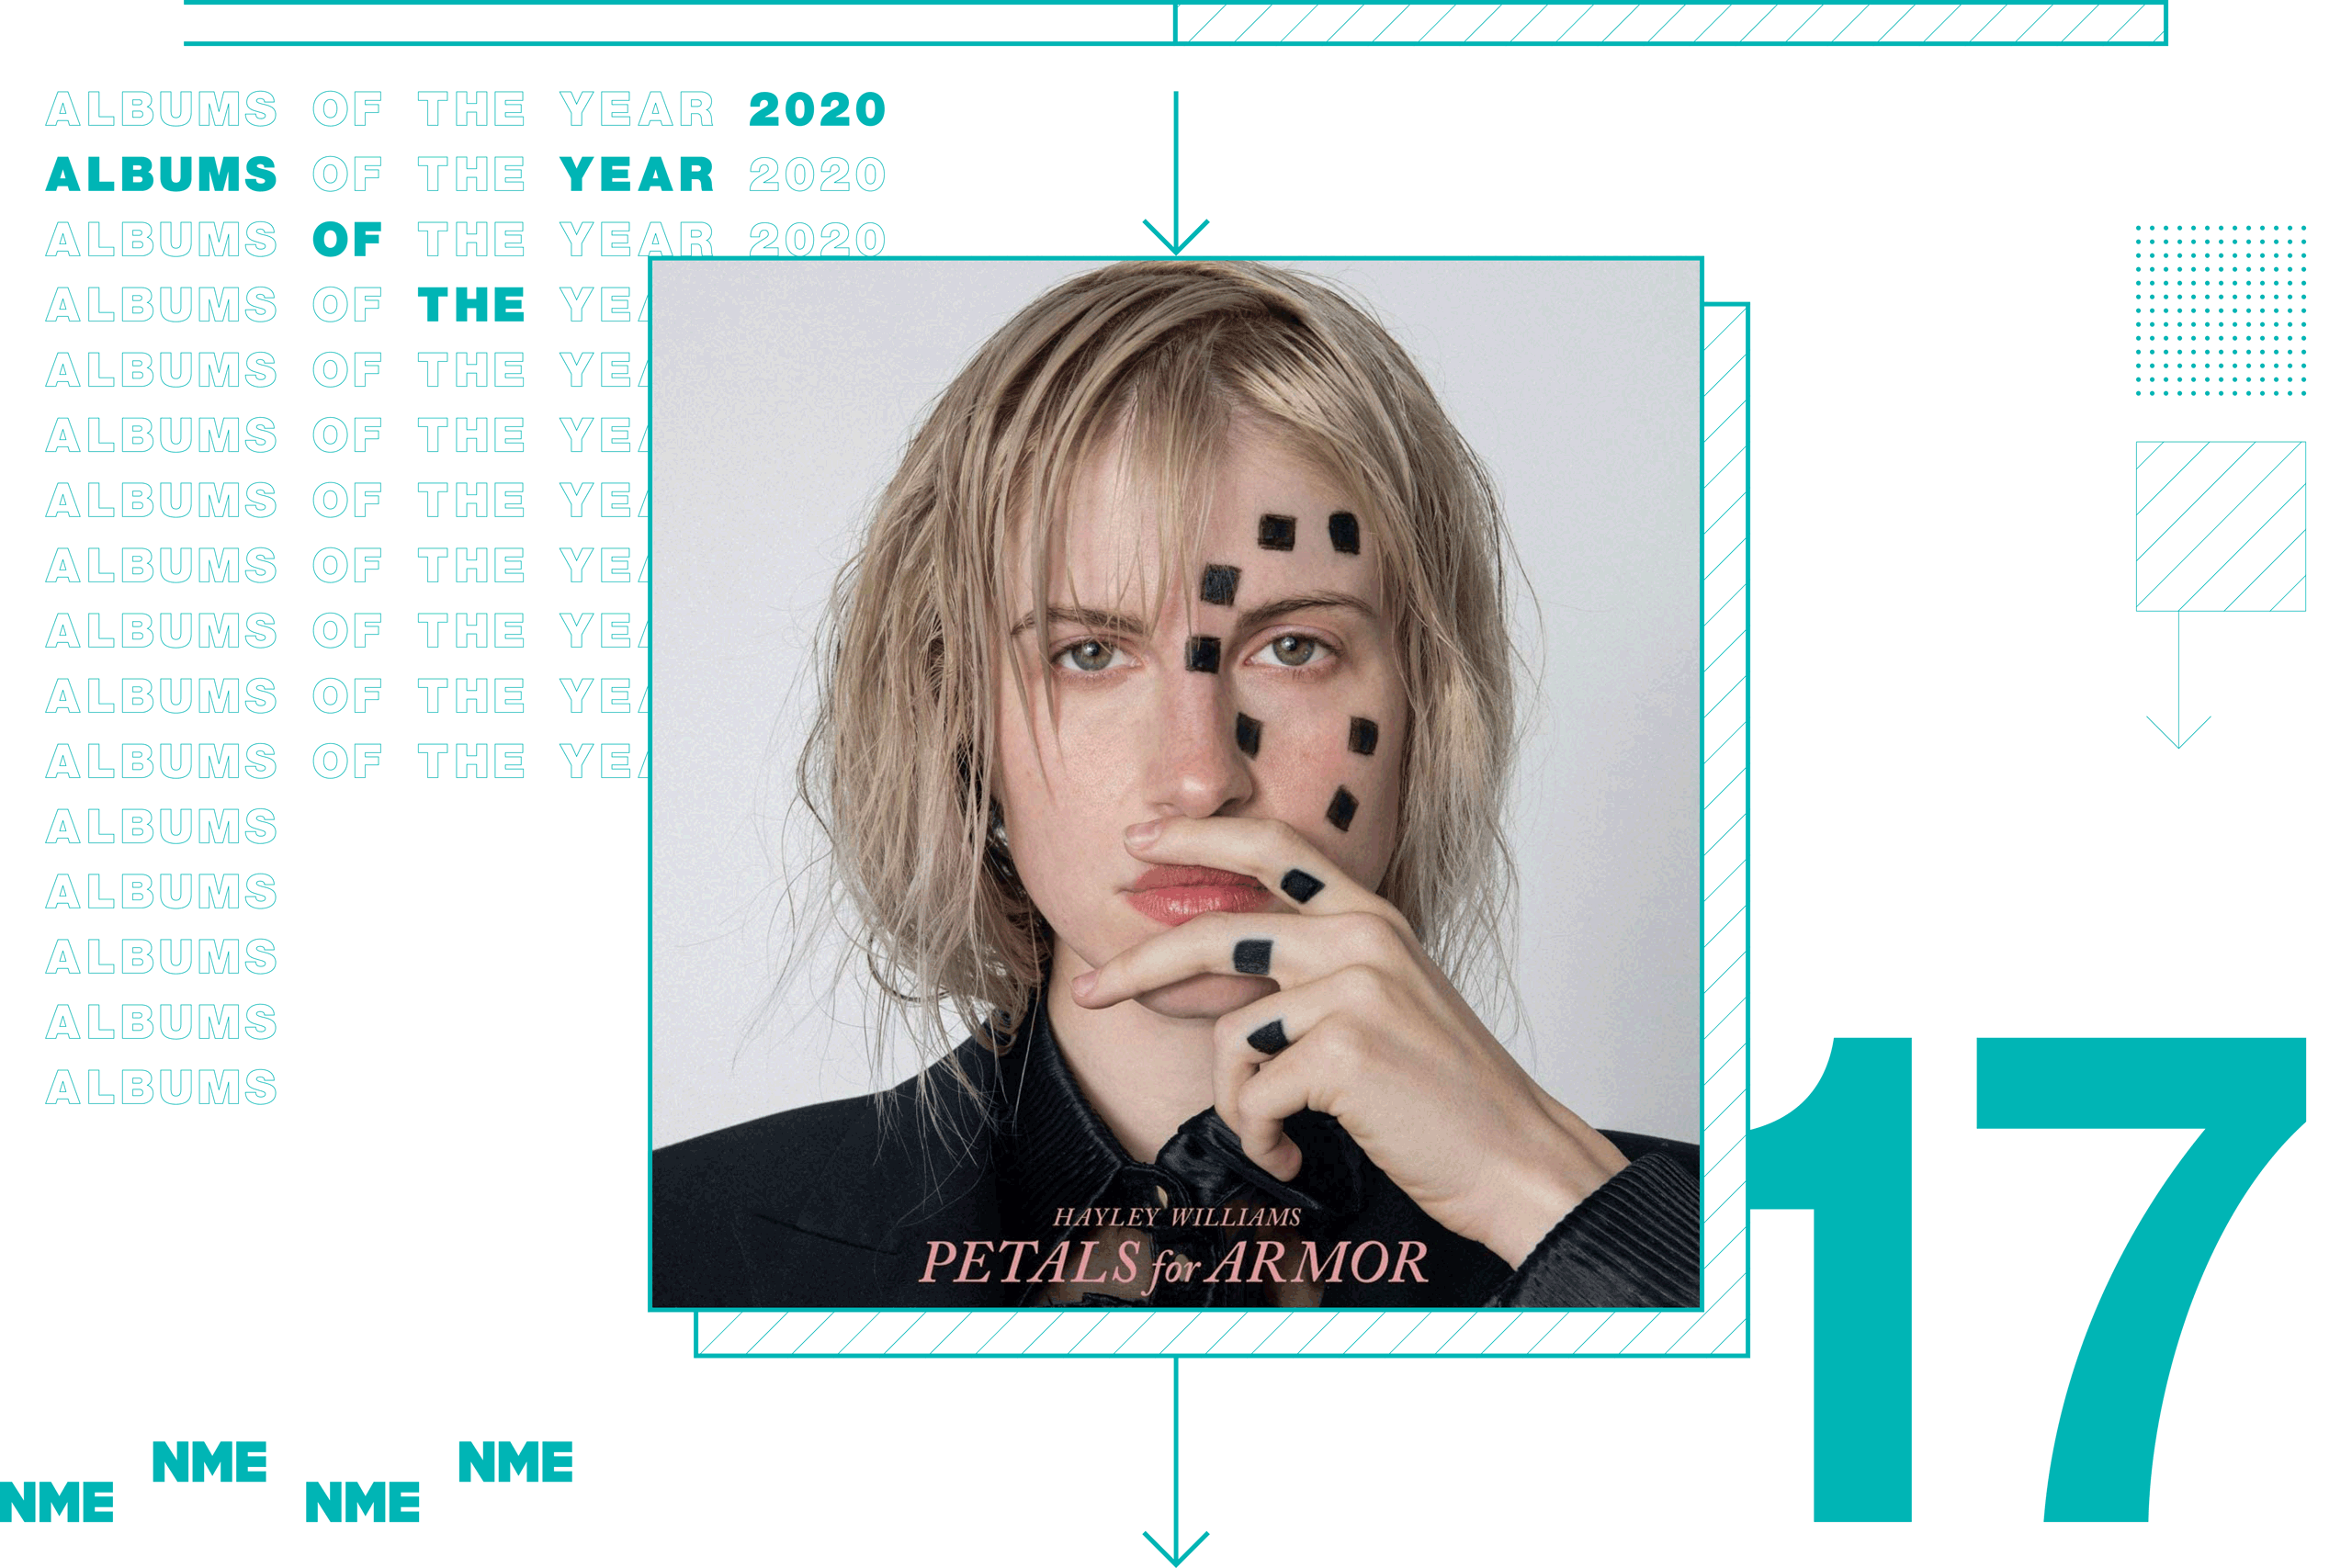 NME Album Of The Year 2020 Hayley Williams, 'Petals For Armor'